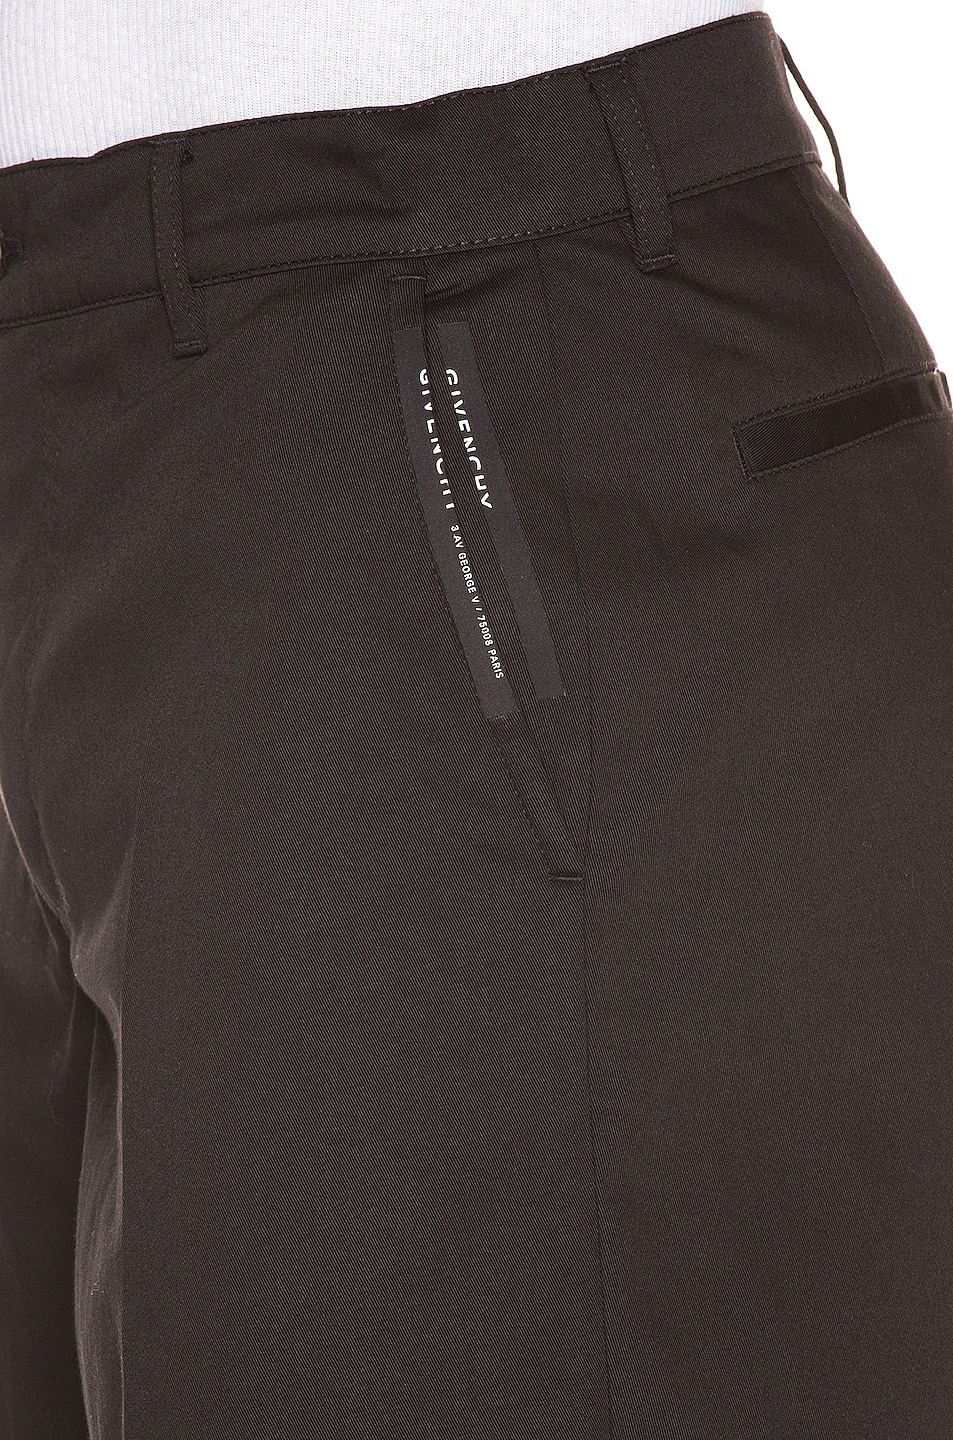 Image 6 of Givenchy Shorts in Black